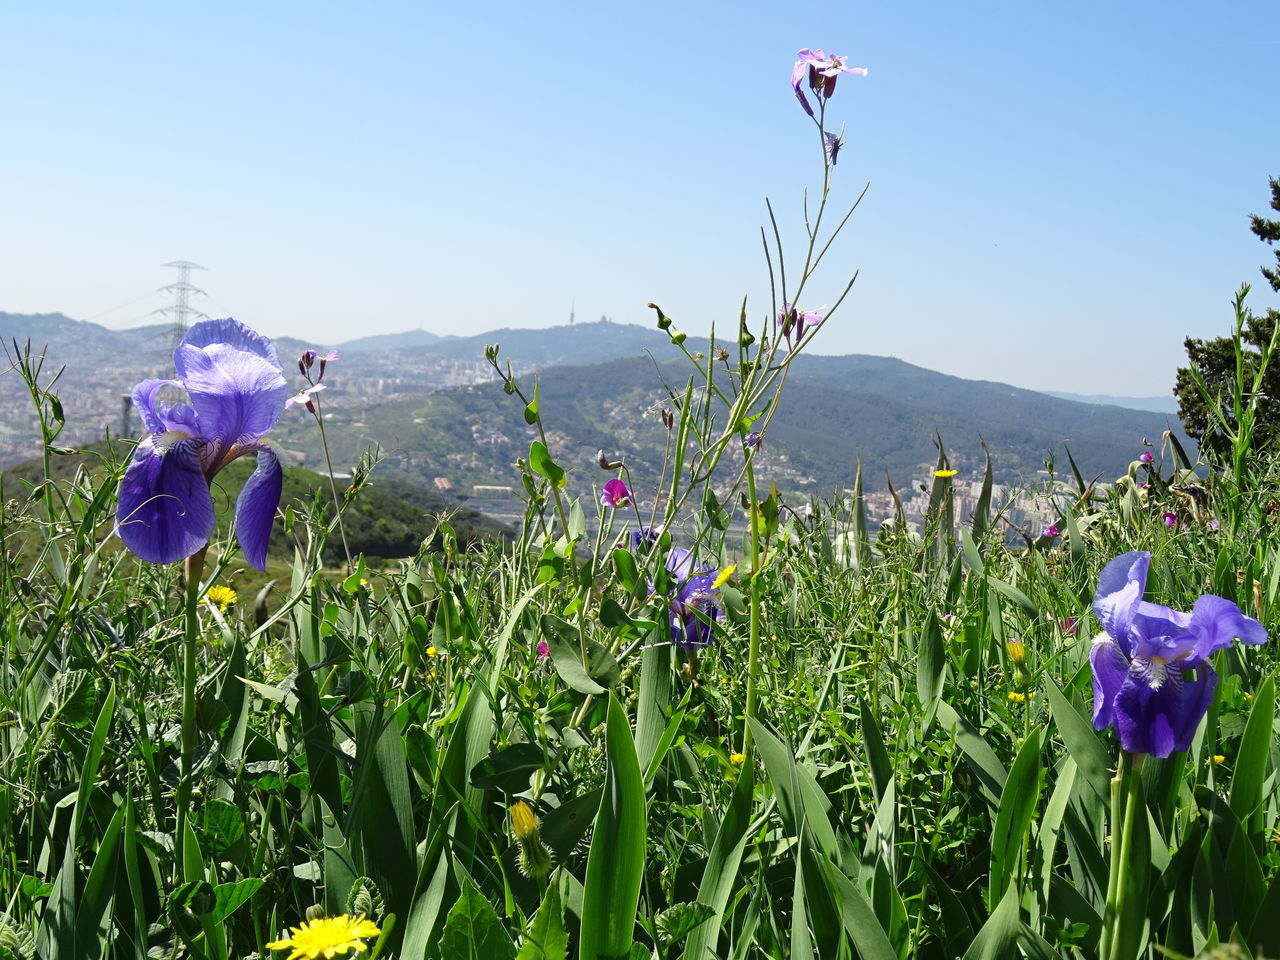 Lilies Beauty In Nature Day Flower Lilies Mid-air Mountain Nature No People Outdoors Plant Sky